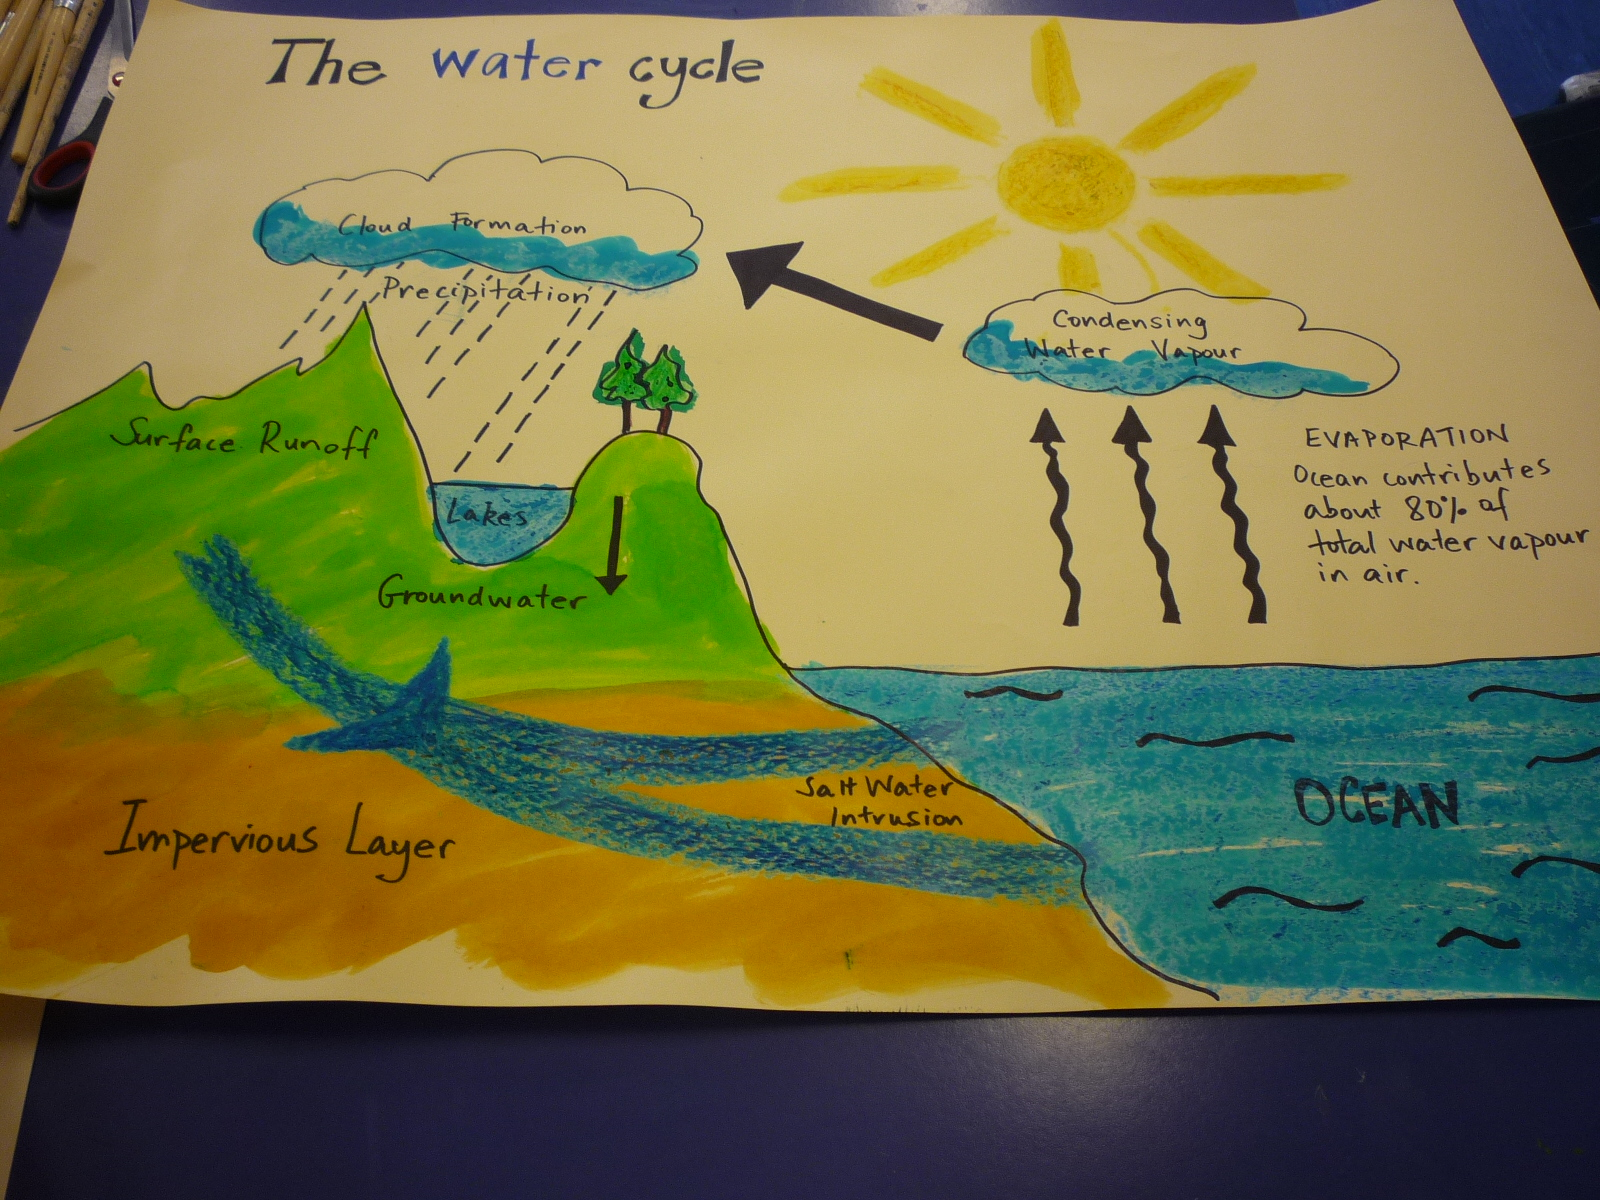 Water Cycle Diagram With Explanation 1995 Honda Civic Dx Stereo Wiring Mrs Naidoo Room 15 How Terrariums Work Like The